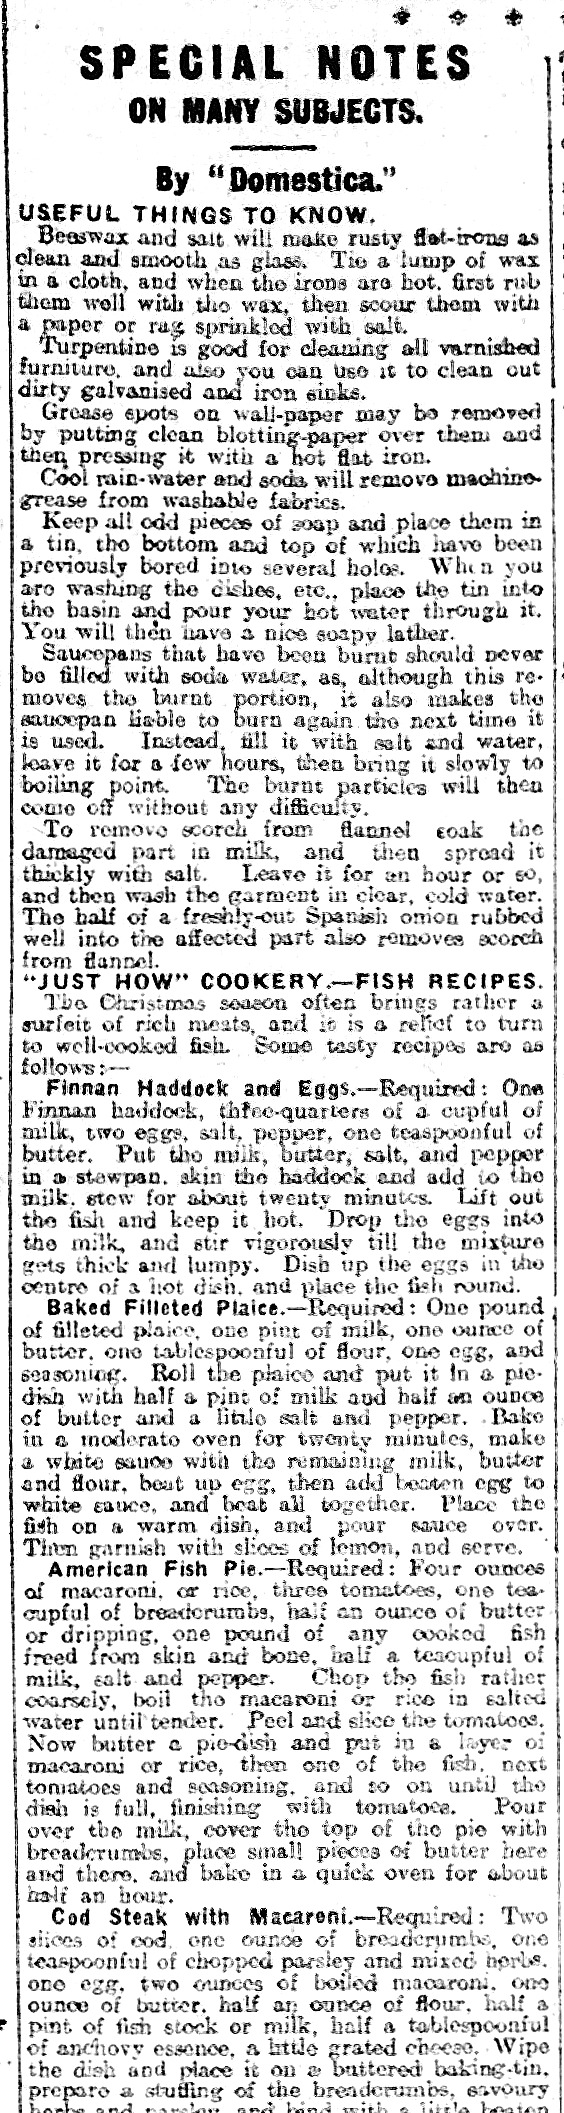 Derbyshire-housekeeping-6-Jan-1917